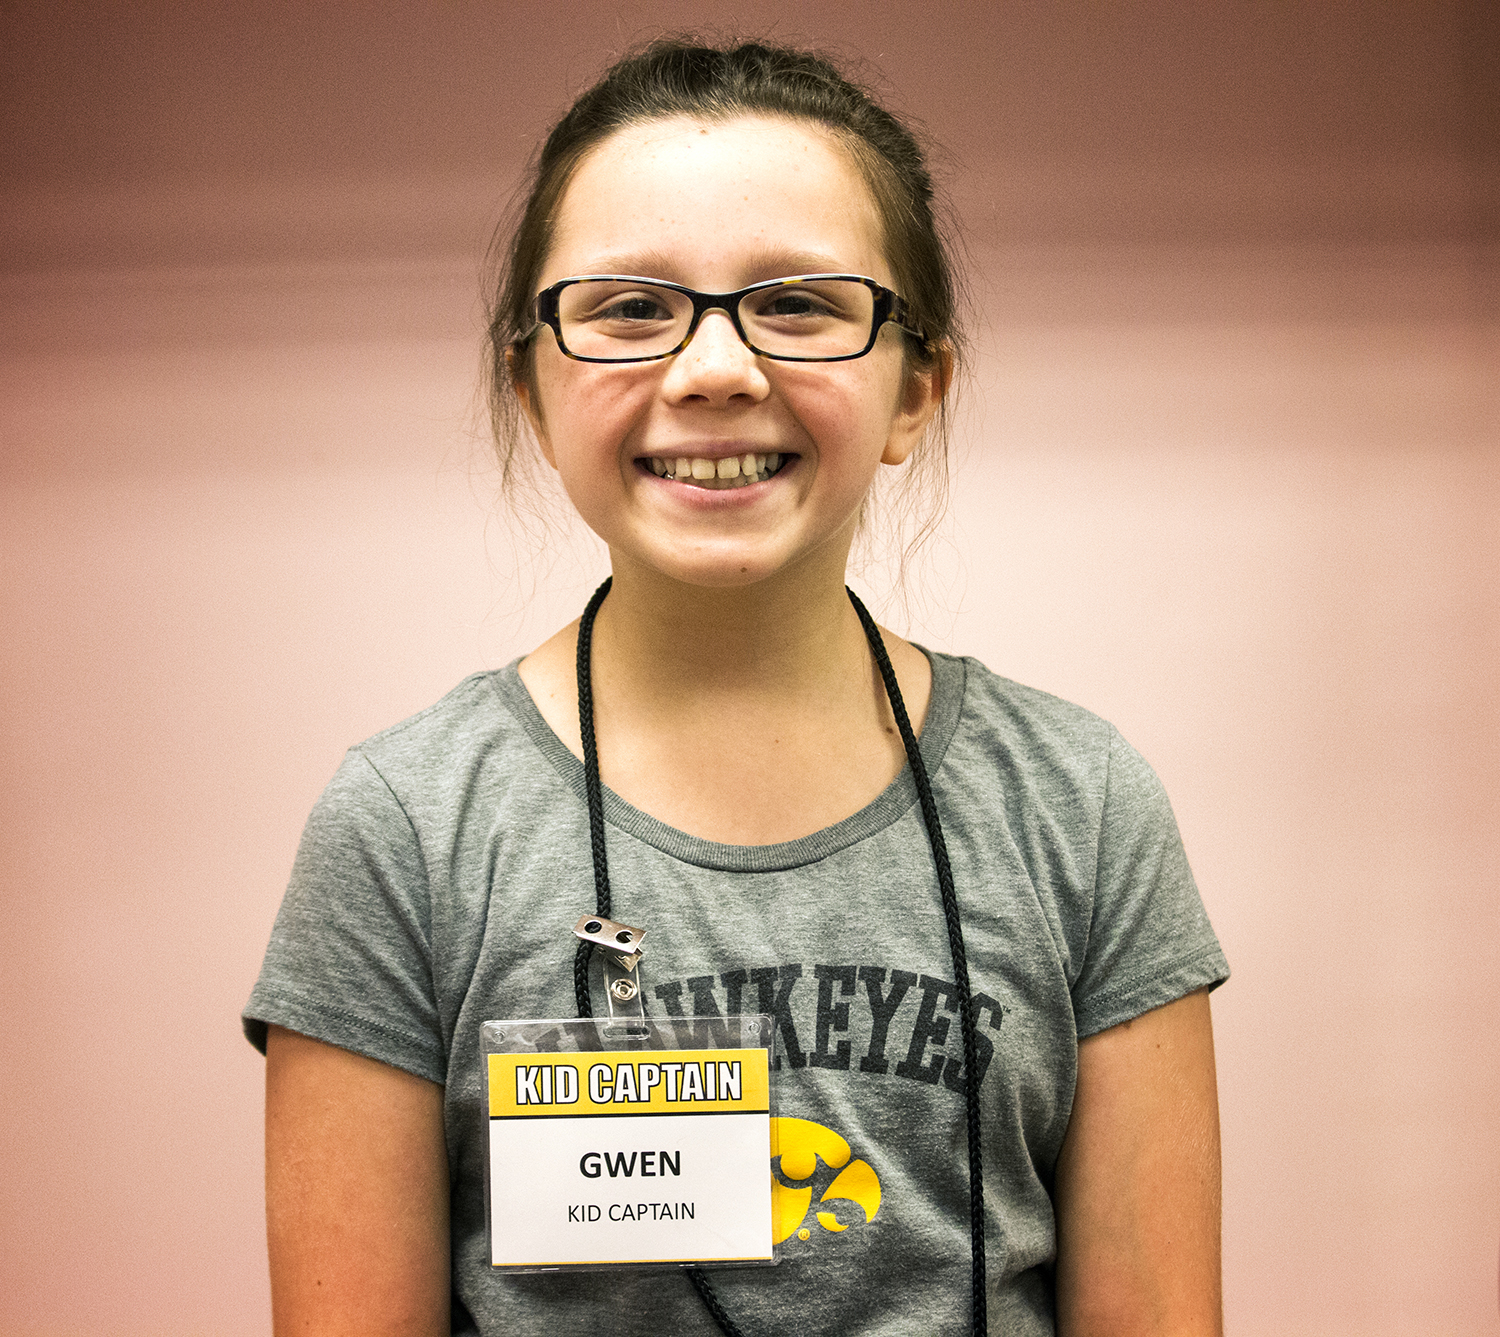 Kid Captain Gwen White smiles for a portrait during Iowa Football Kid's Day at Kinnick Stadium on Saturday, Aug. 11, 2018. The 2018 Kid Captains met the Iowa football team and participated in a behind-the-scenes tour of Kinnick Stadium. Gwen's story will be featured during Iowa's first home game on Saturday.